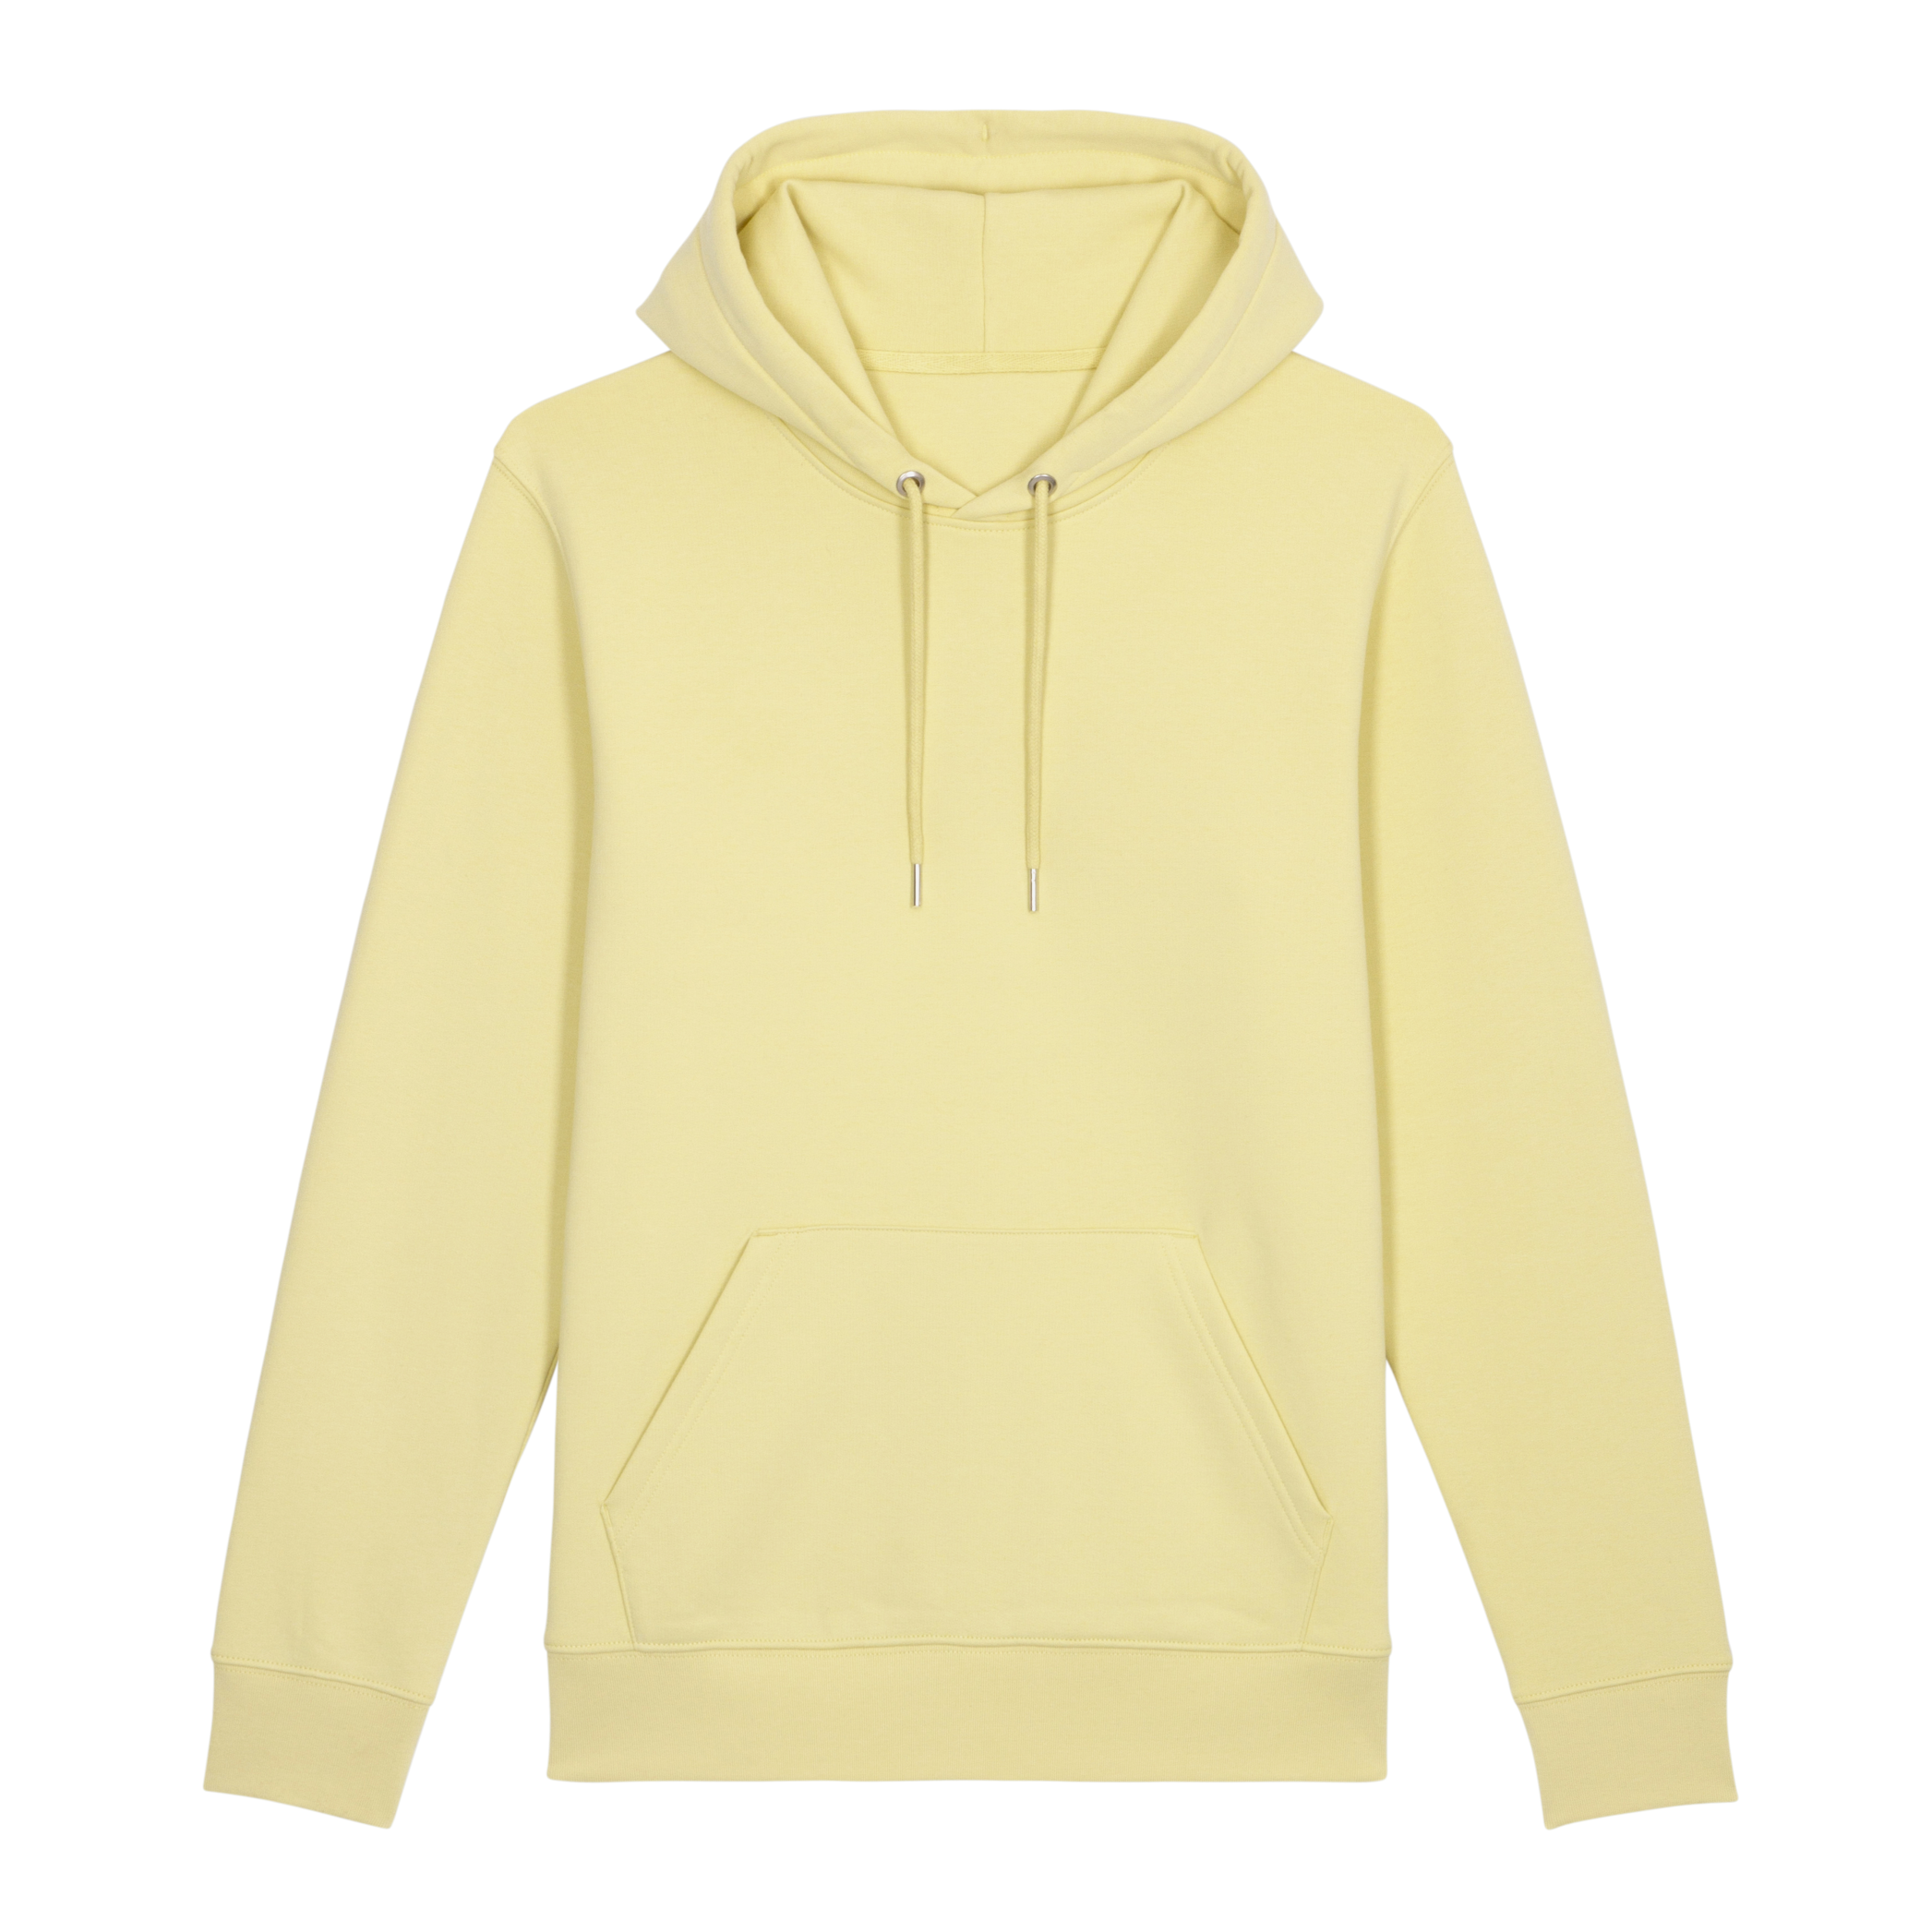 Essentials Yellow Hoodie